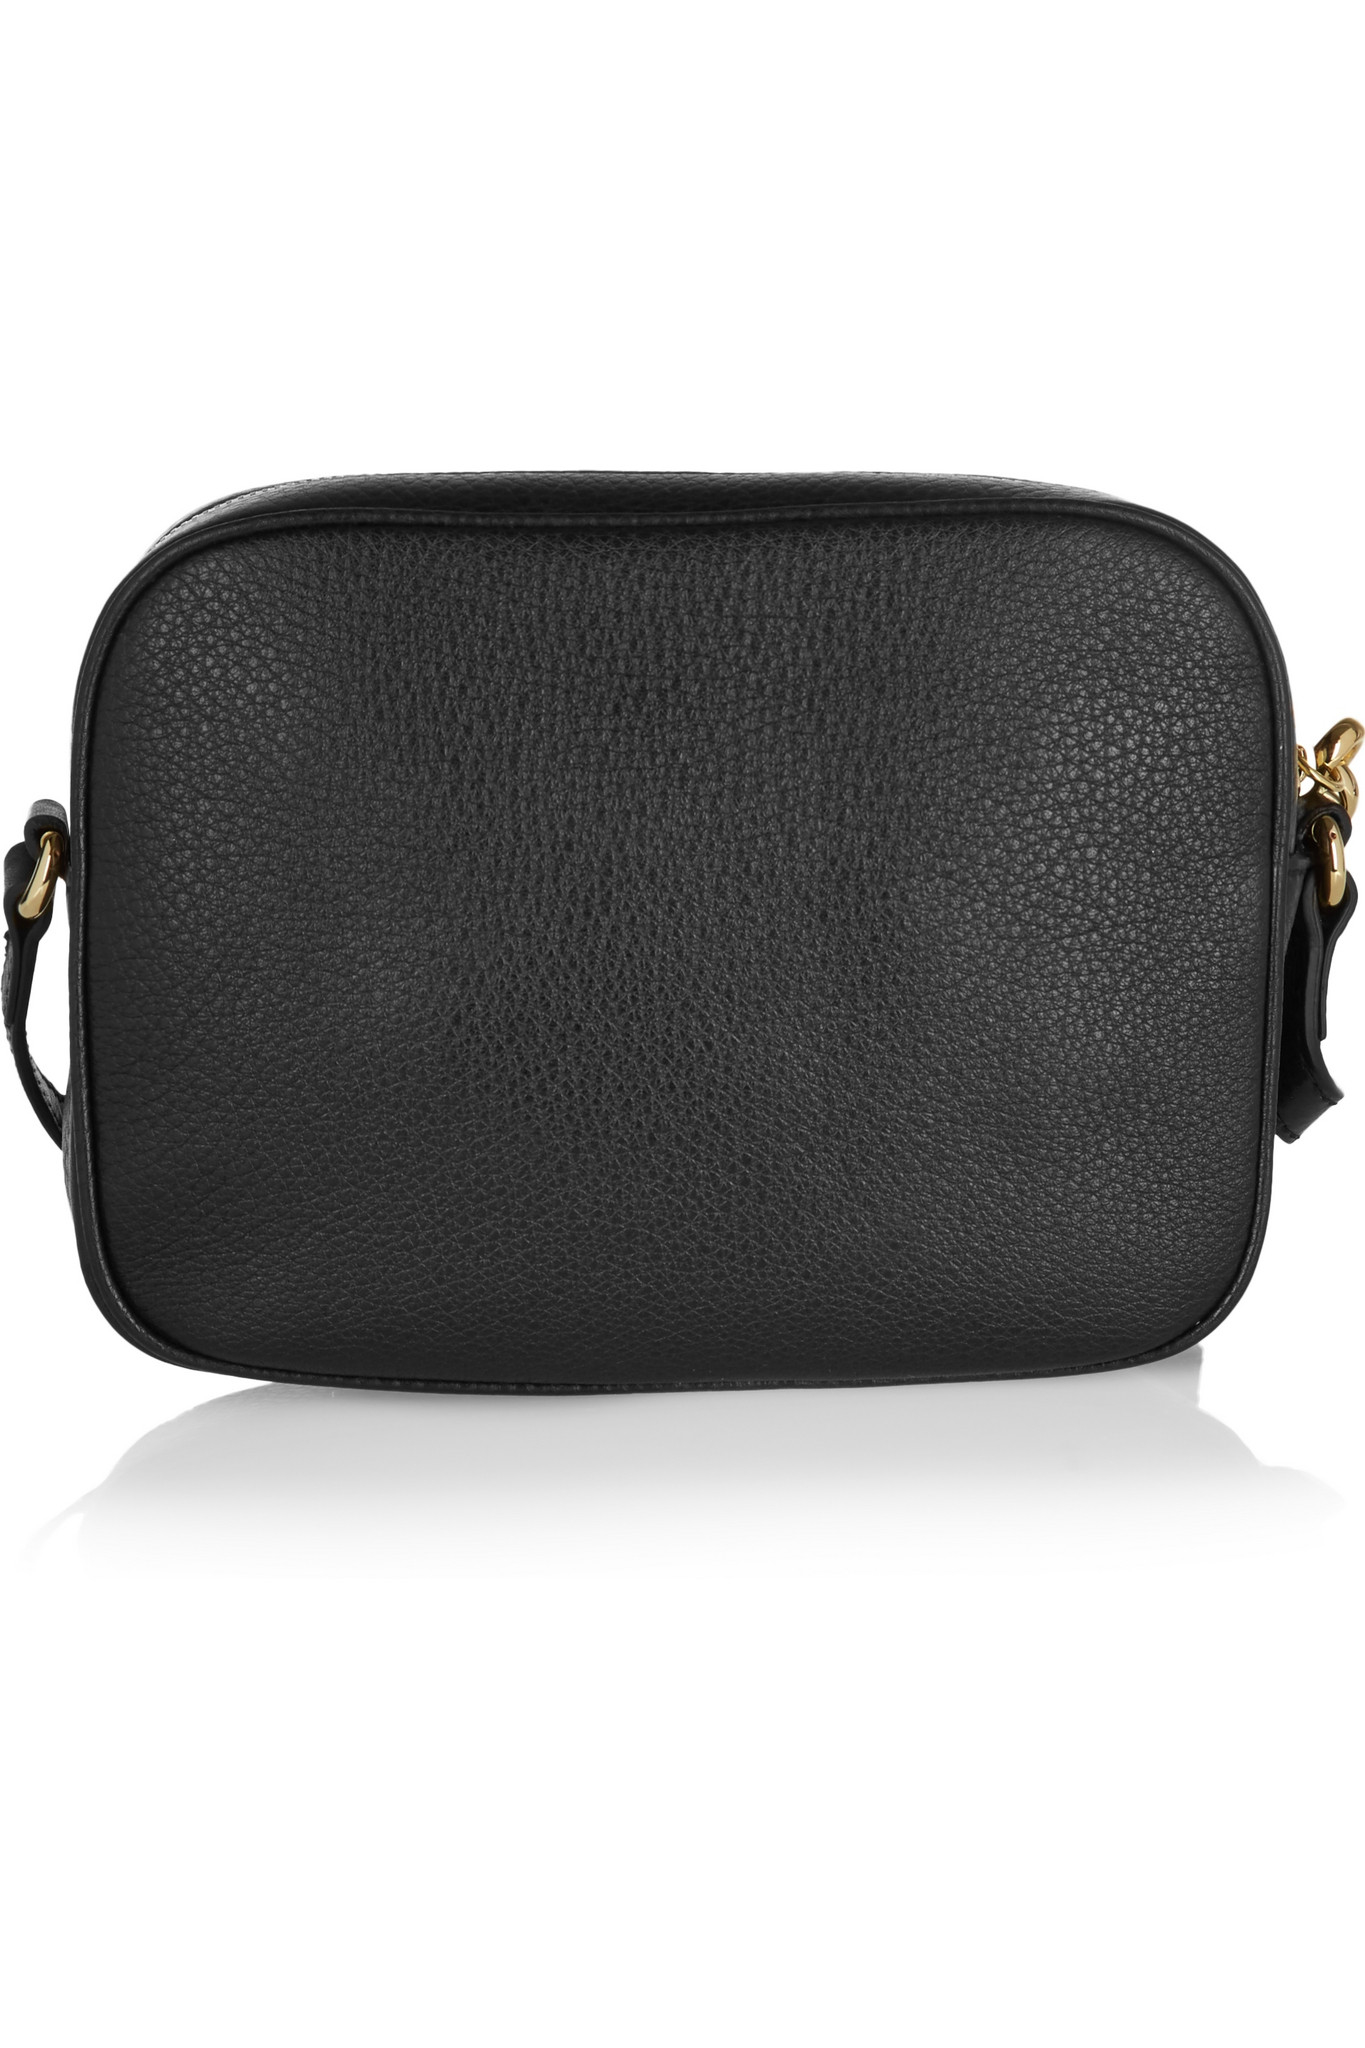 d5b05b548969 Lyst Gucci Soho Leather Top Handle Bag In Black Free Coloring Pages ...